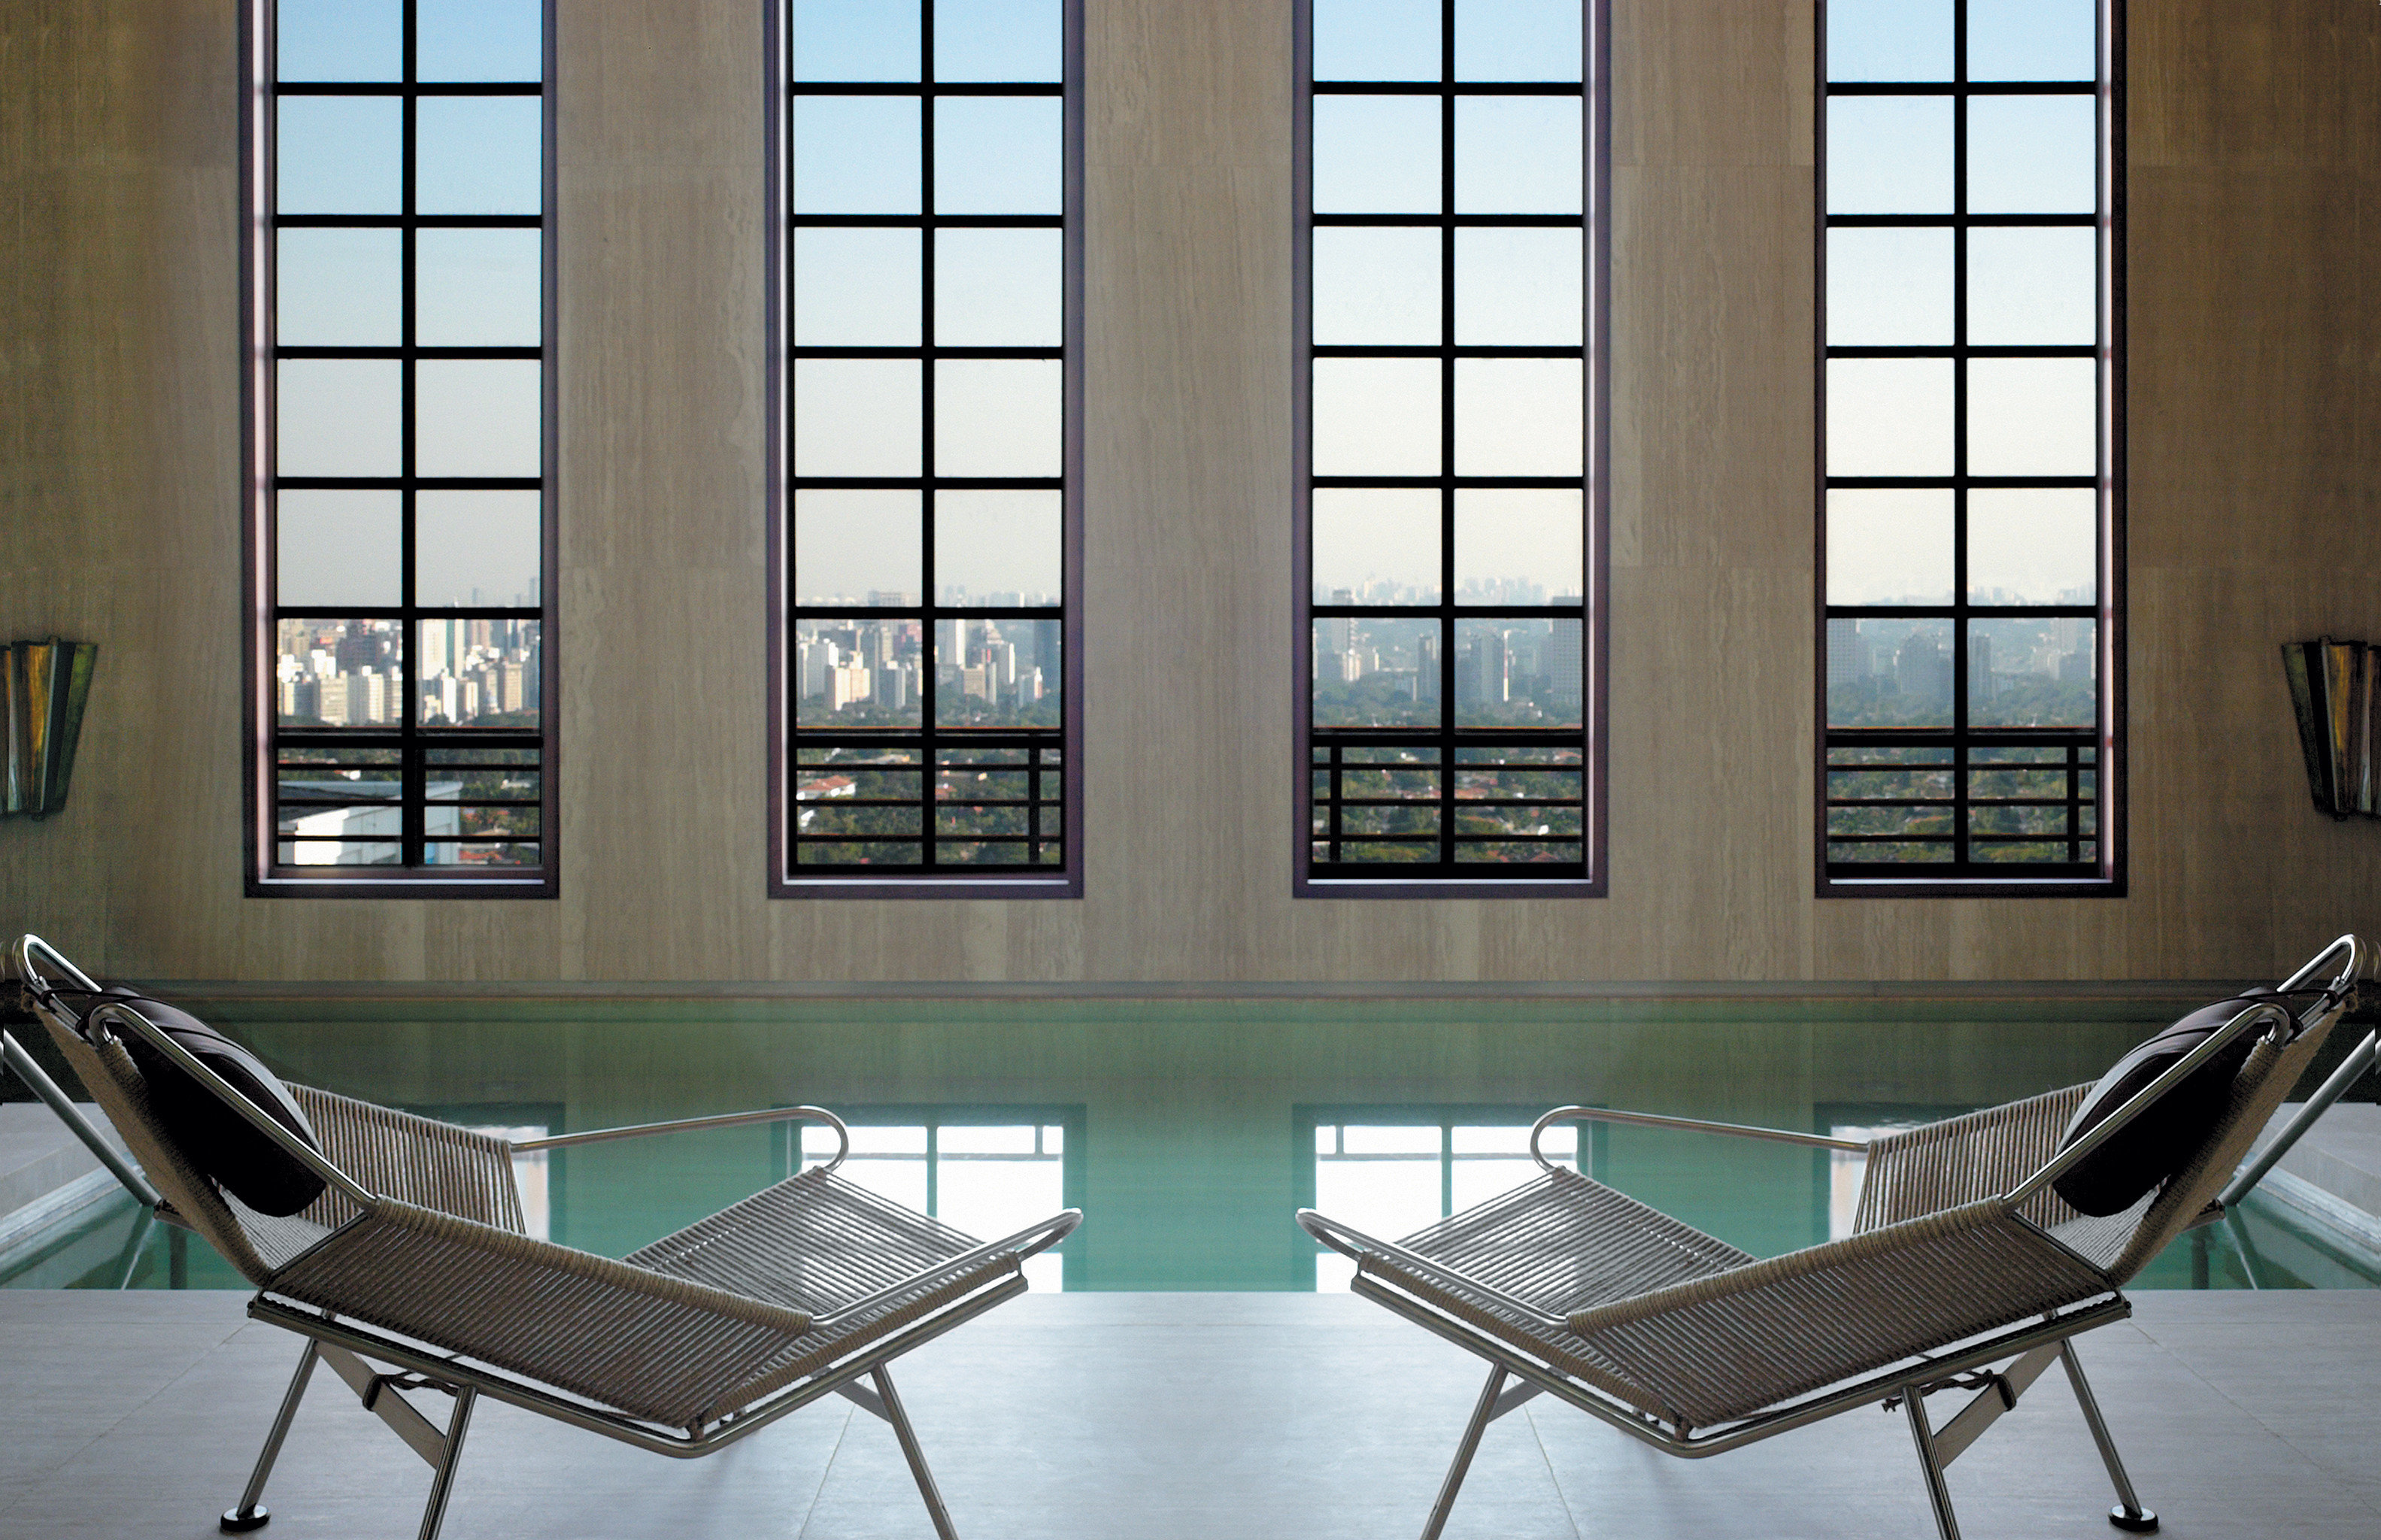 Lounge Luxury Modern Pool chair property home condominium daylighting living room dining table